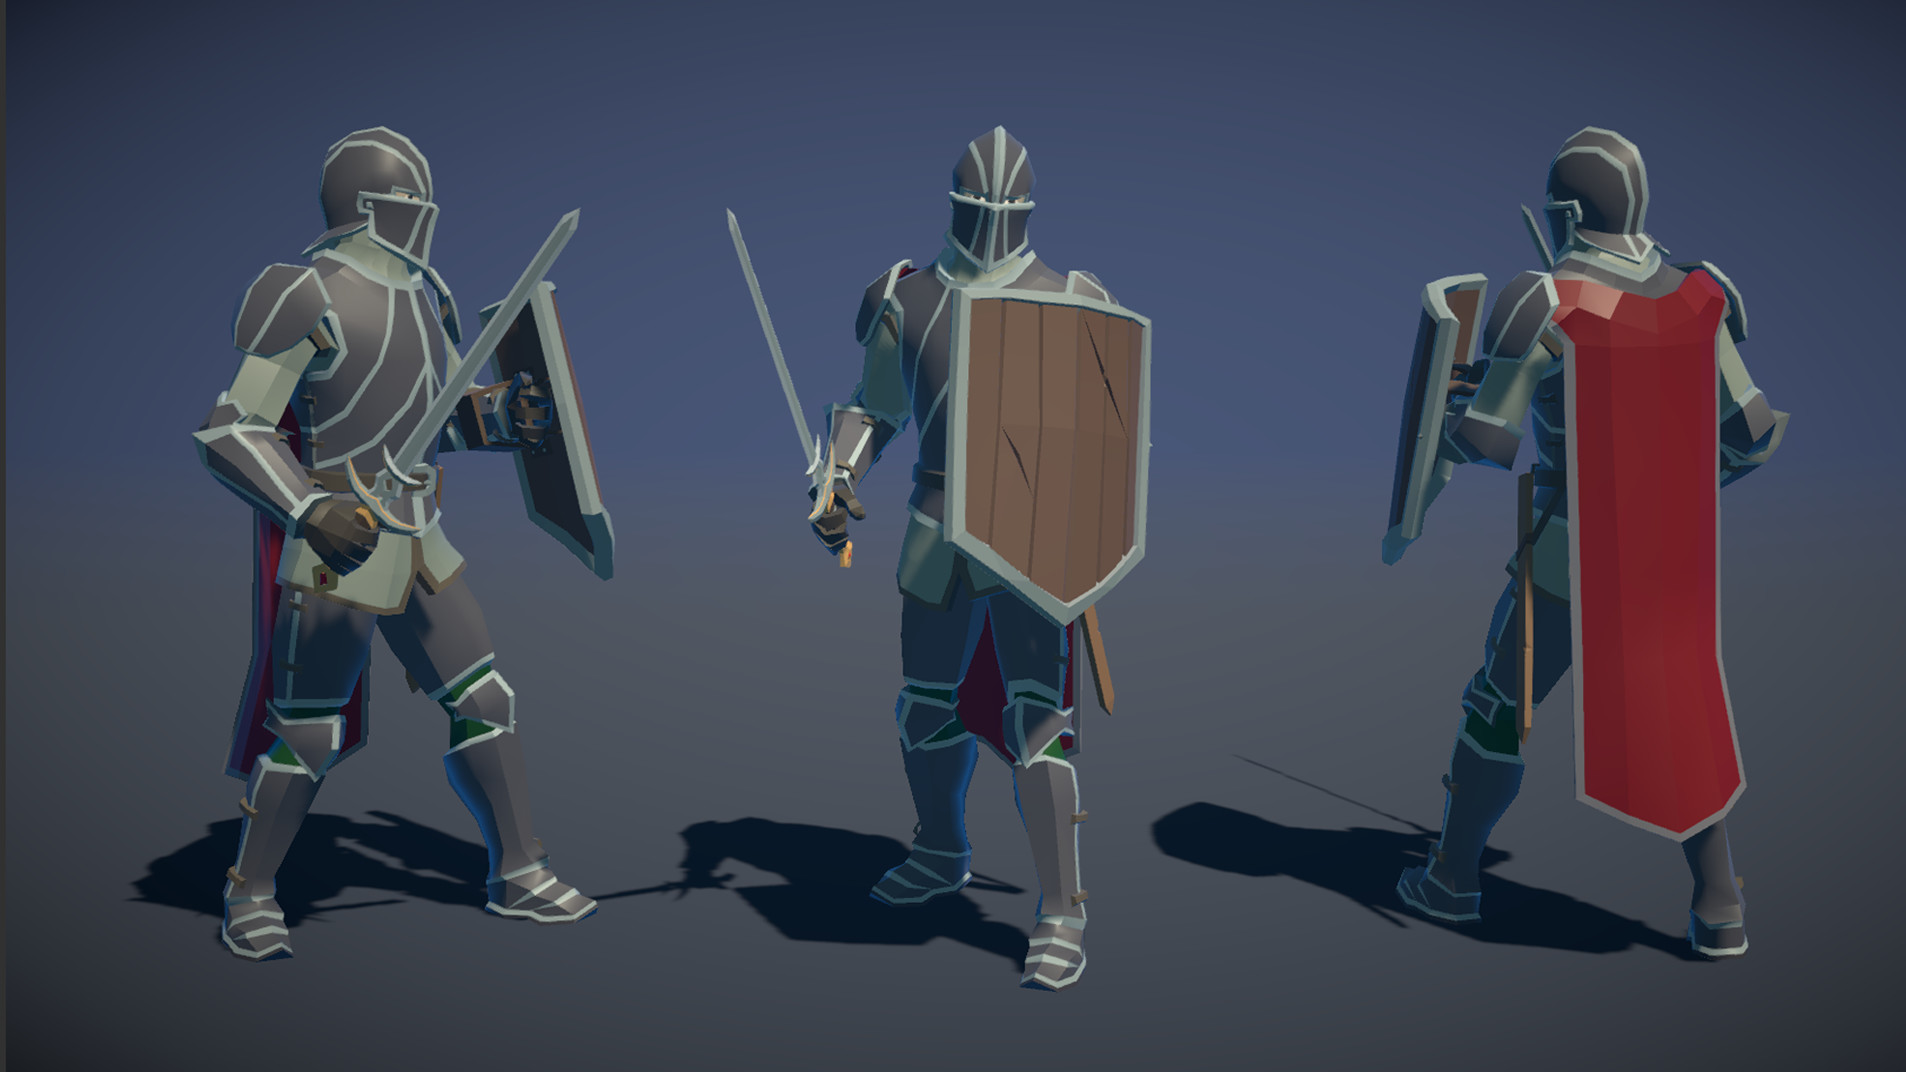 Polytope studio pt medieval lowpoly characters knight 01